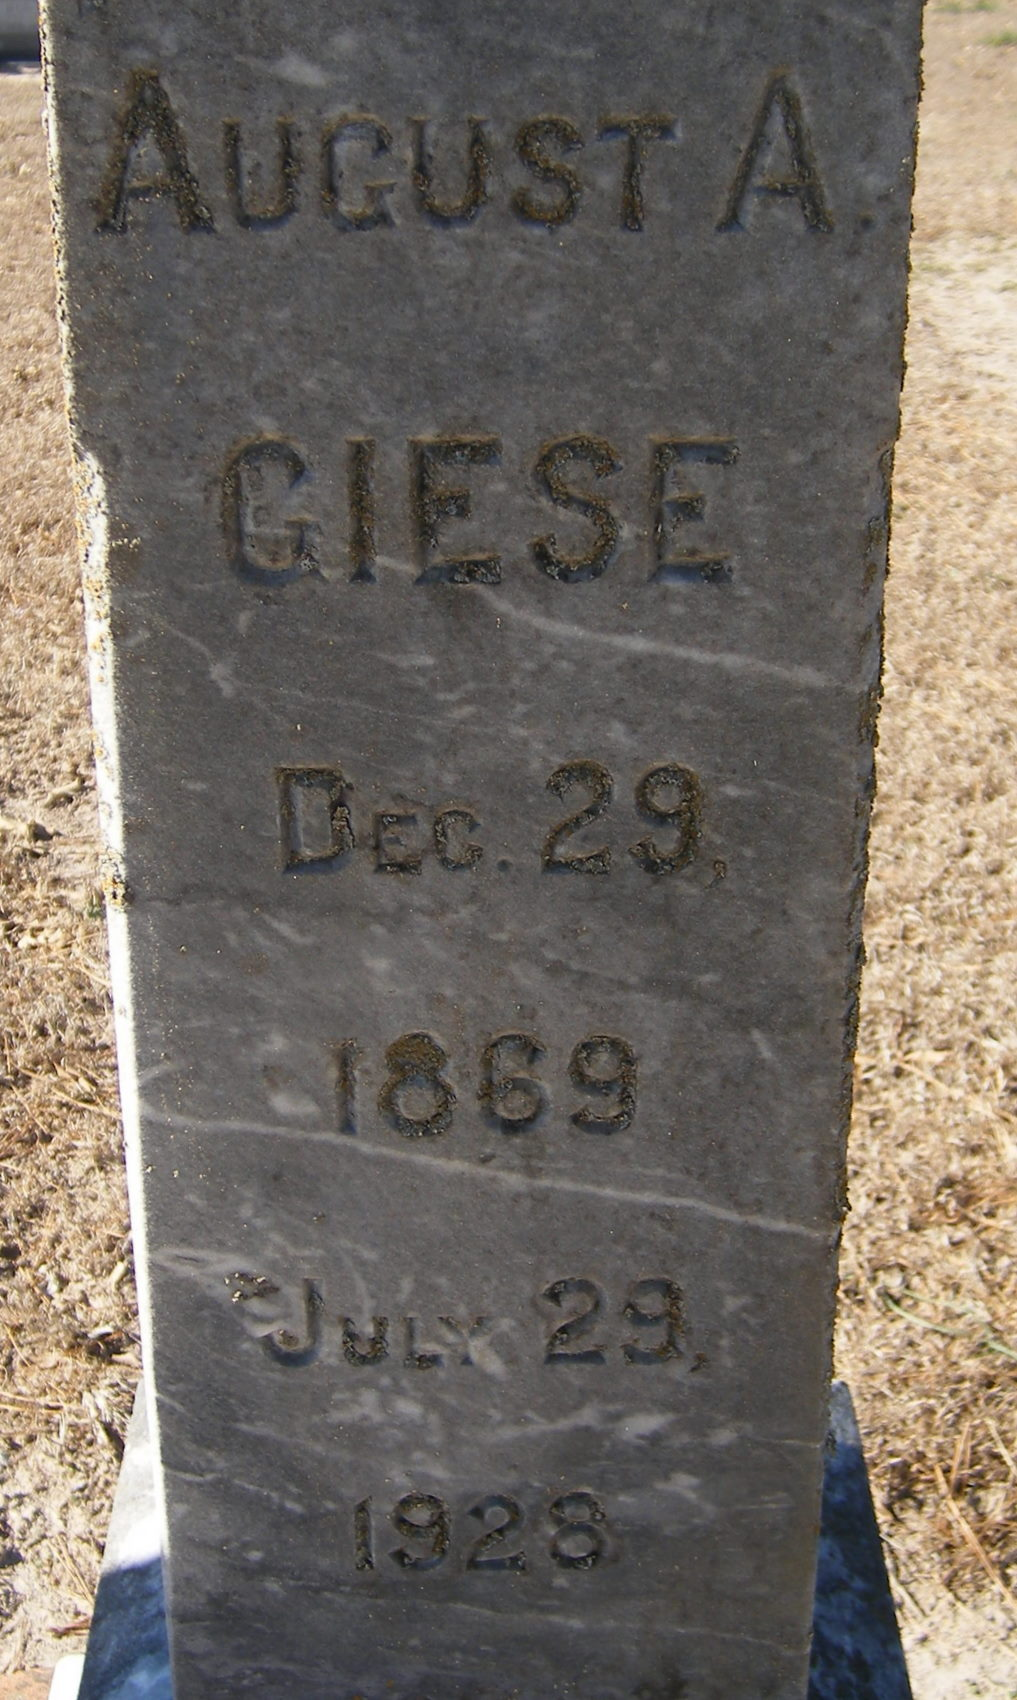 August A Giese